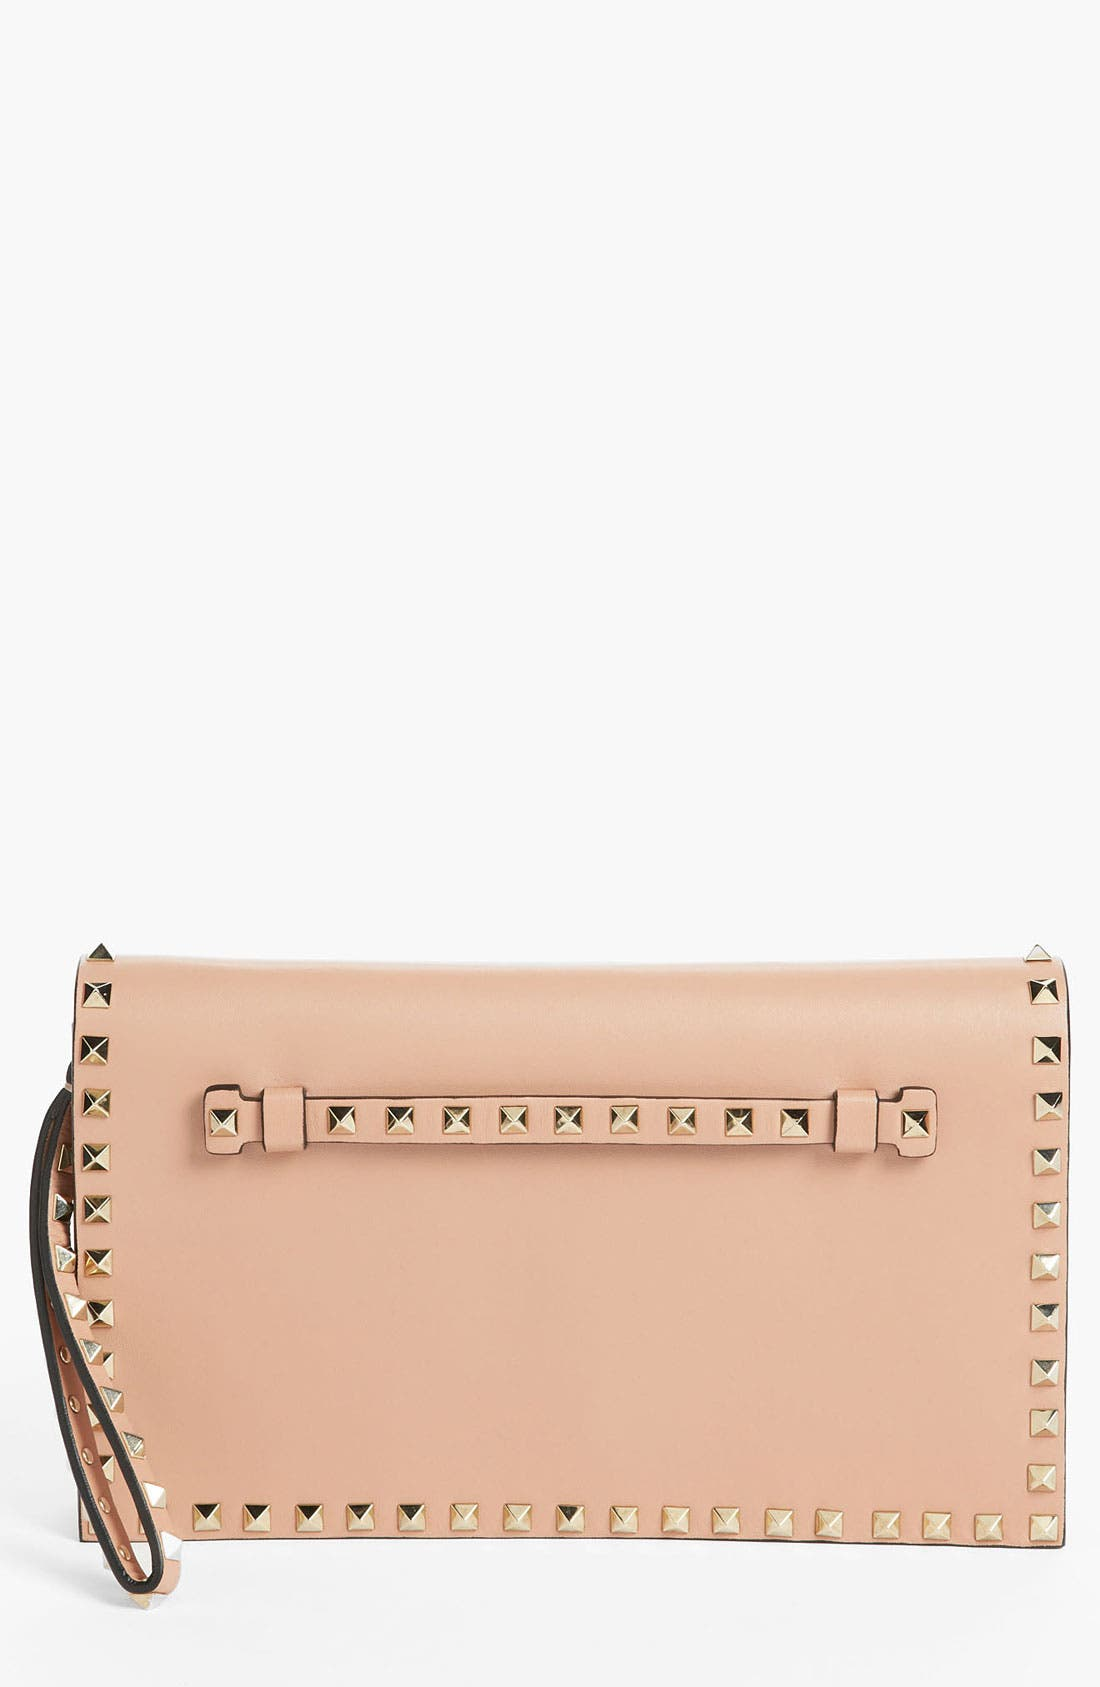 Alternate Image 1 Selected - Valentino 'Rockstud' Nappa Leather Flap Clutch